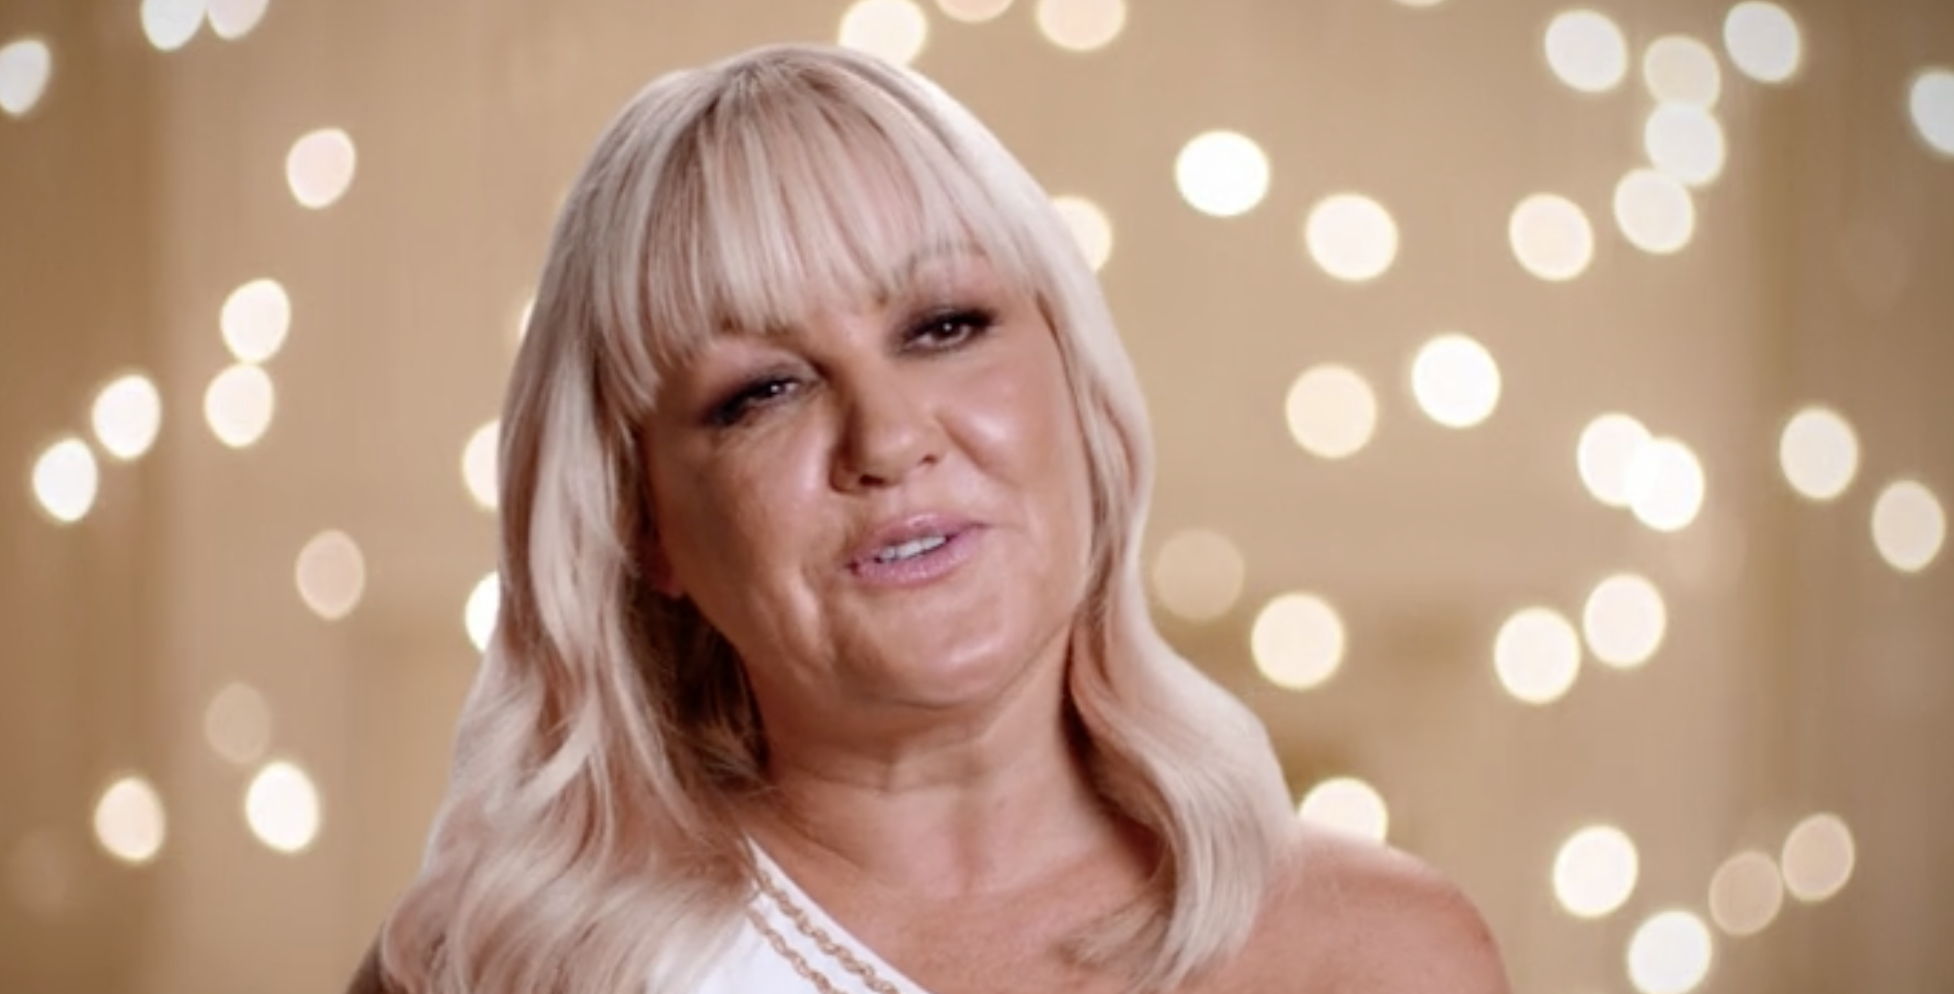 'Insecure' Lisa George reveals she hasn't lost any weight during Dancing On Ice training